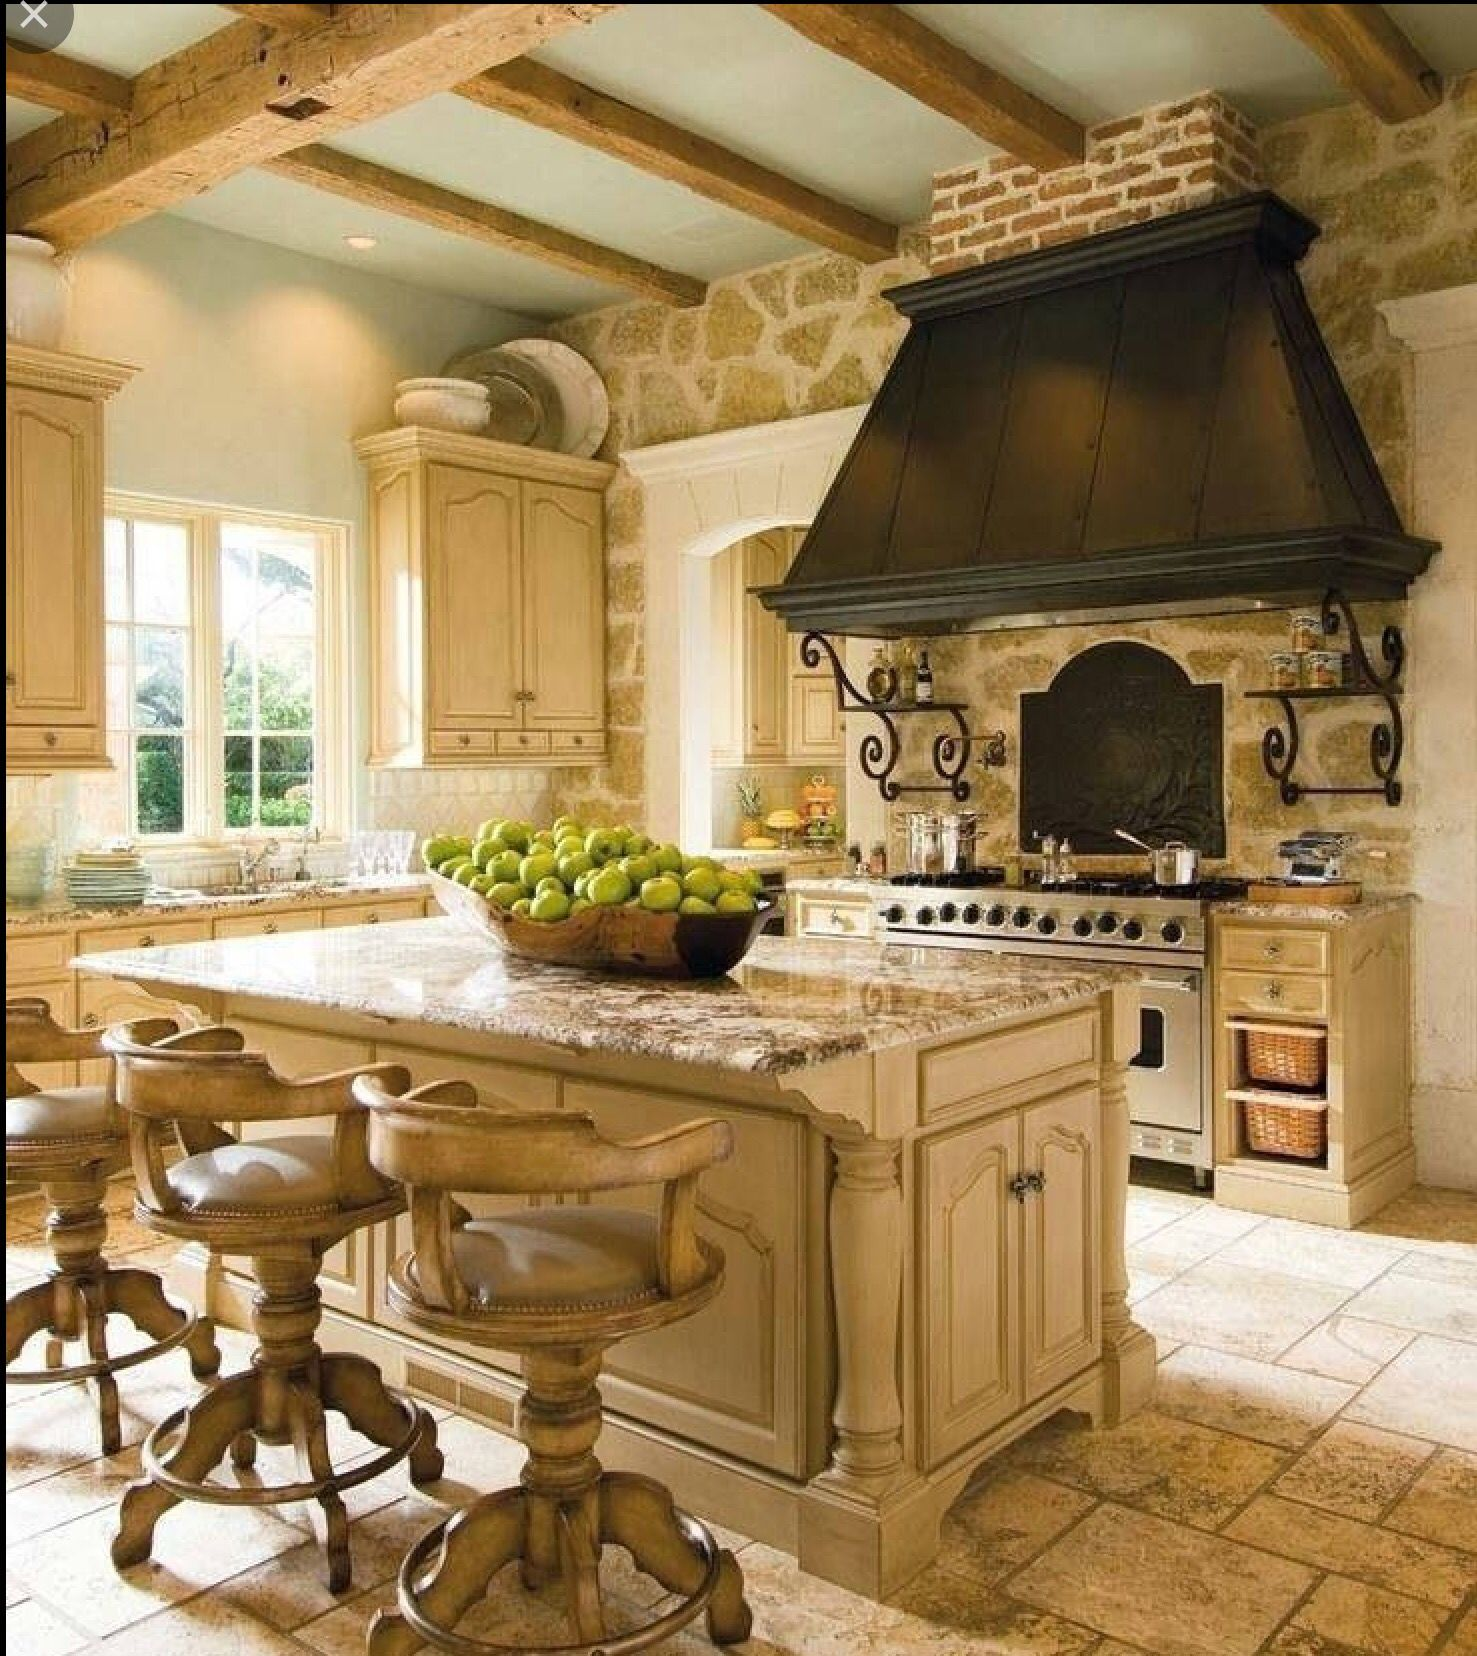 16 Stunning Designs Of French Country Kitchens Amusing French Country